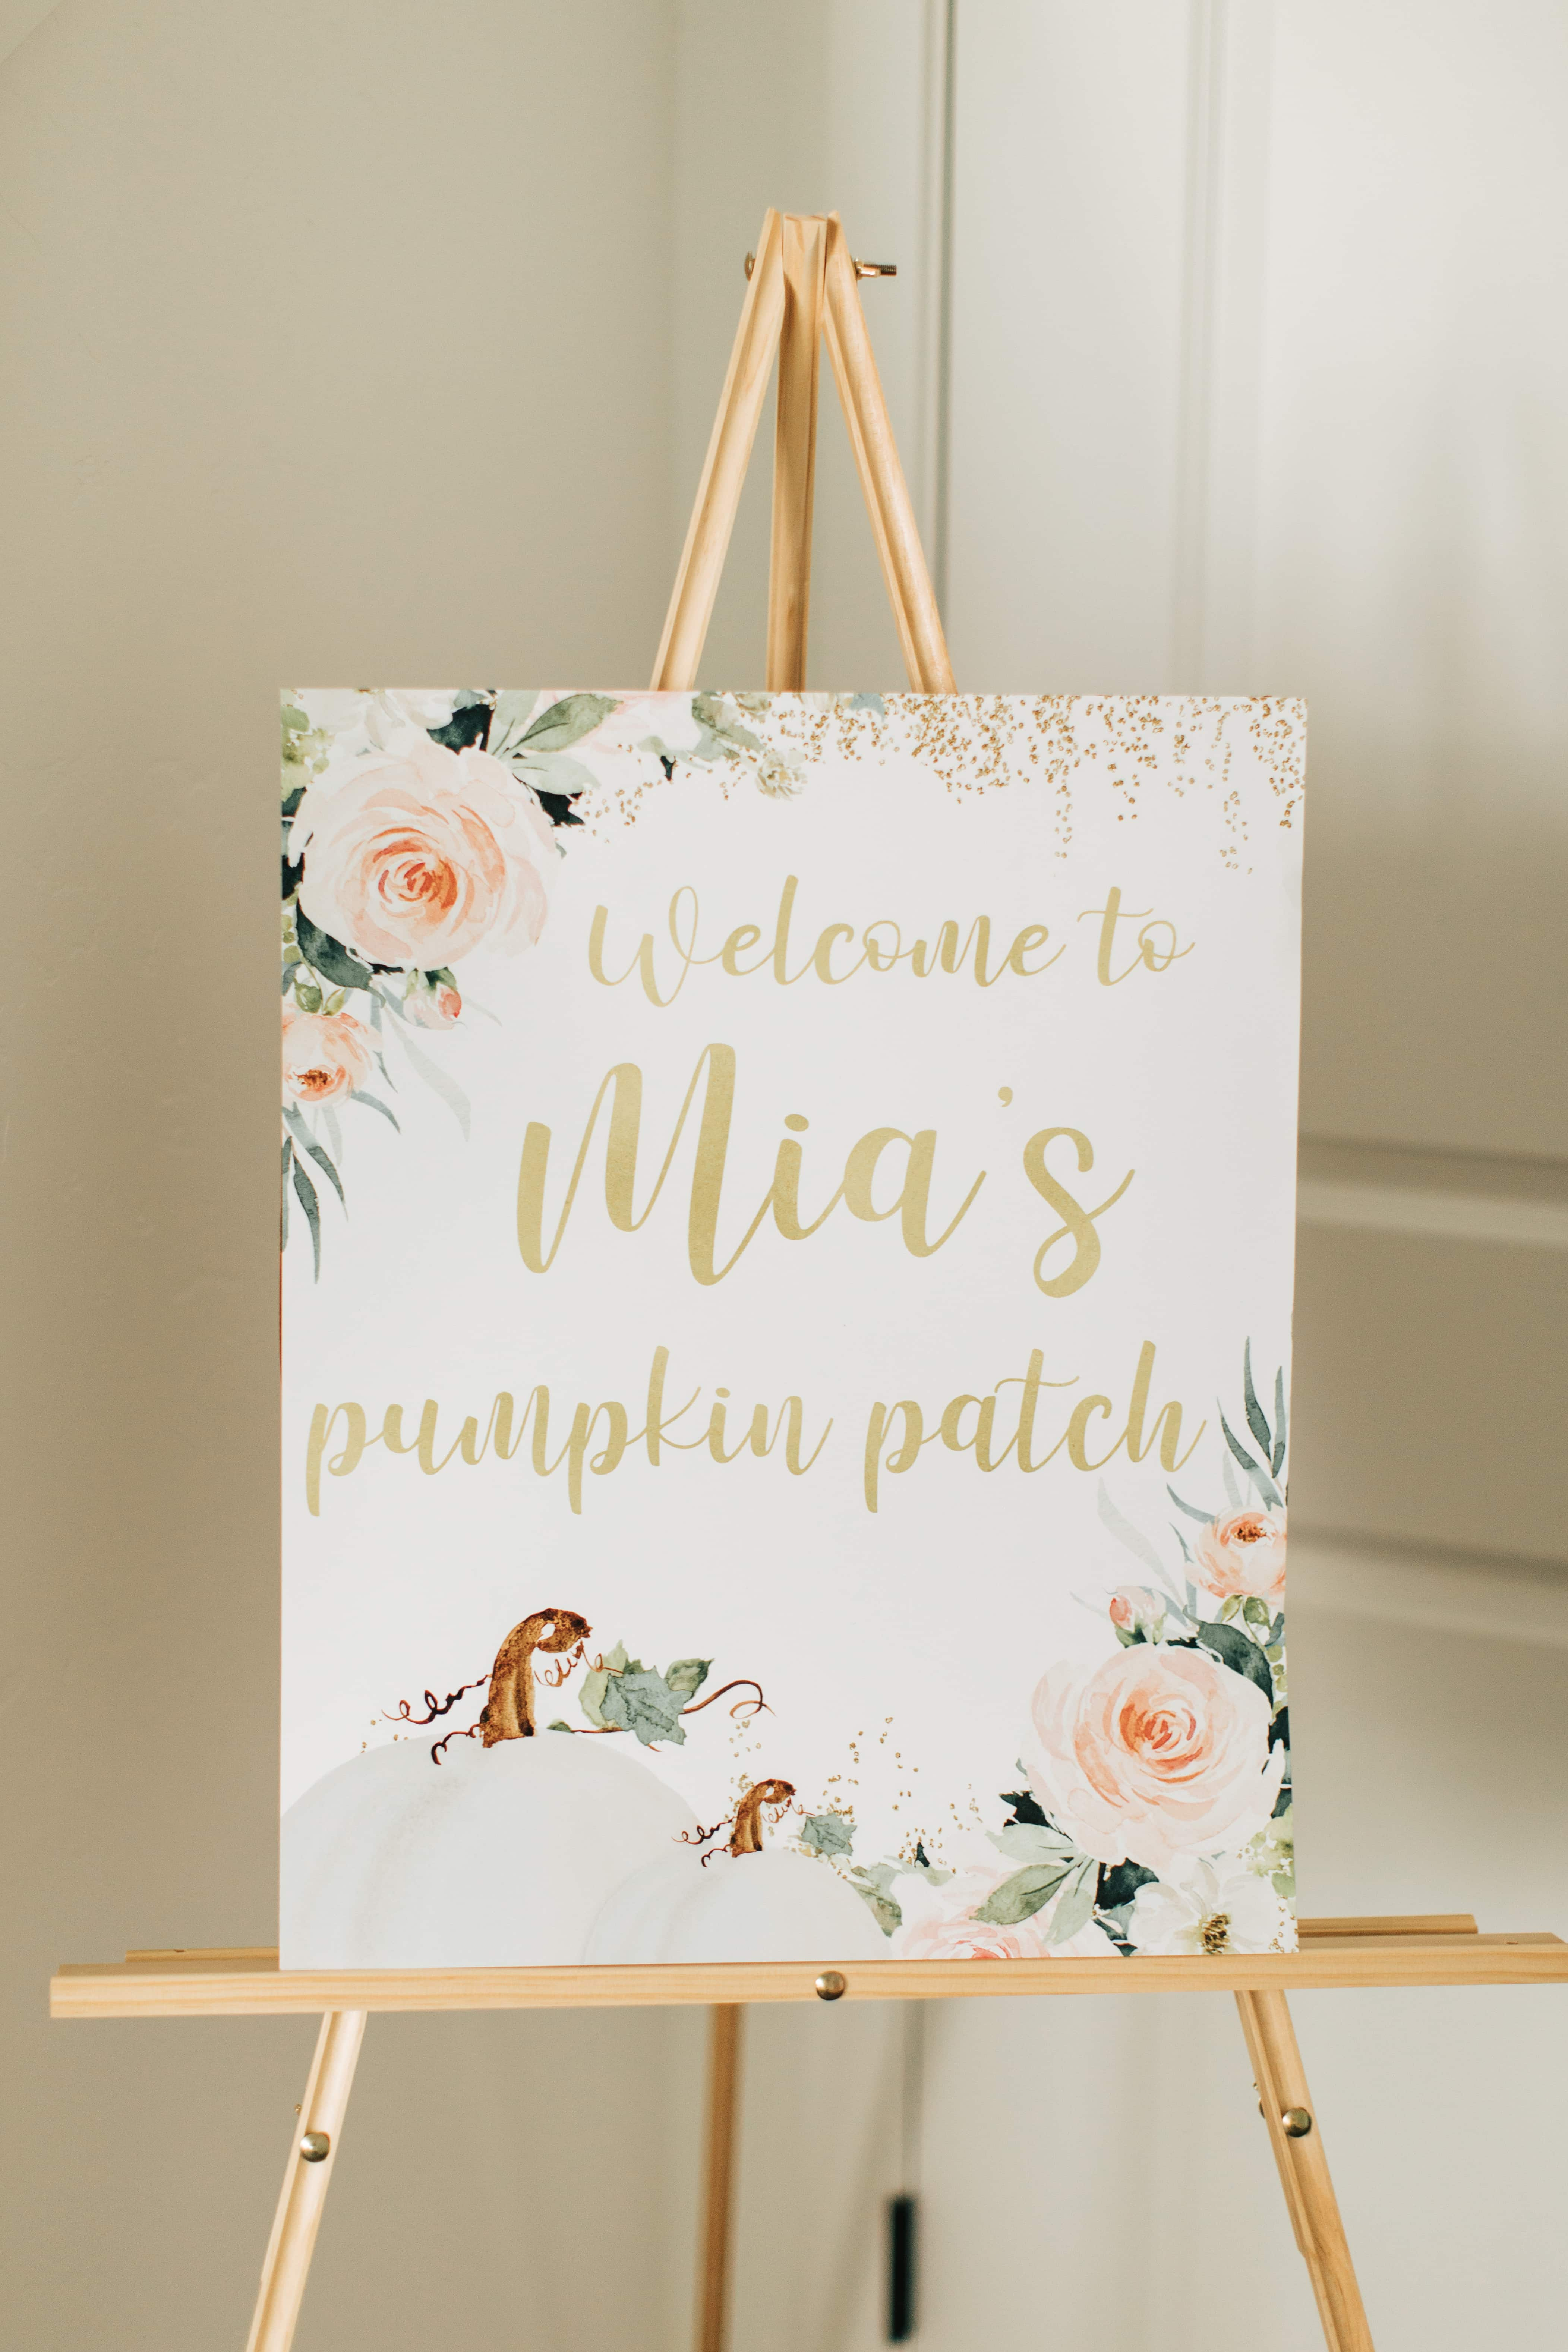 Pumpkin patch party sign on an easel.